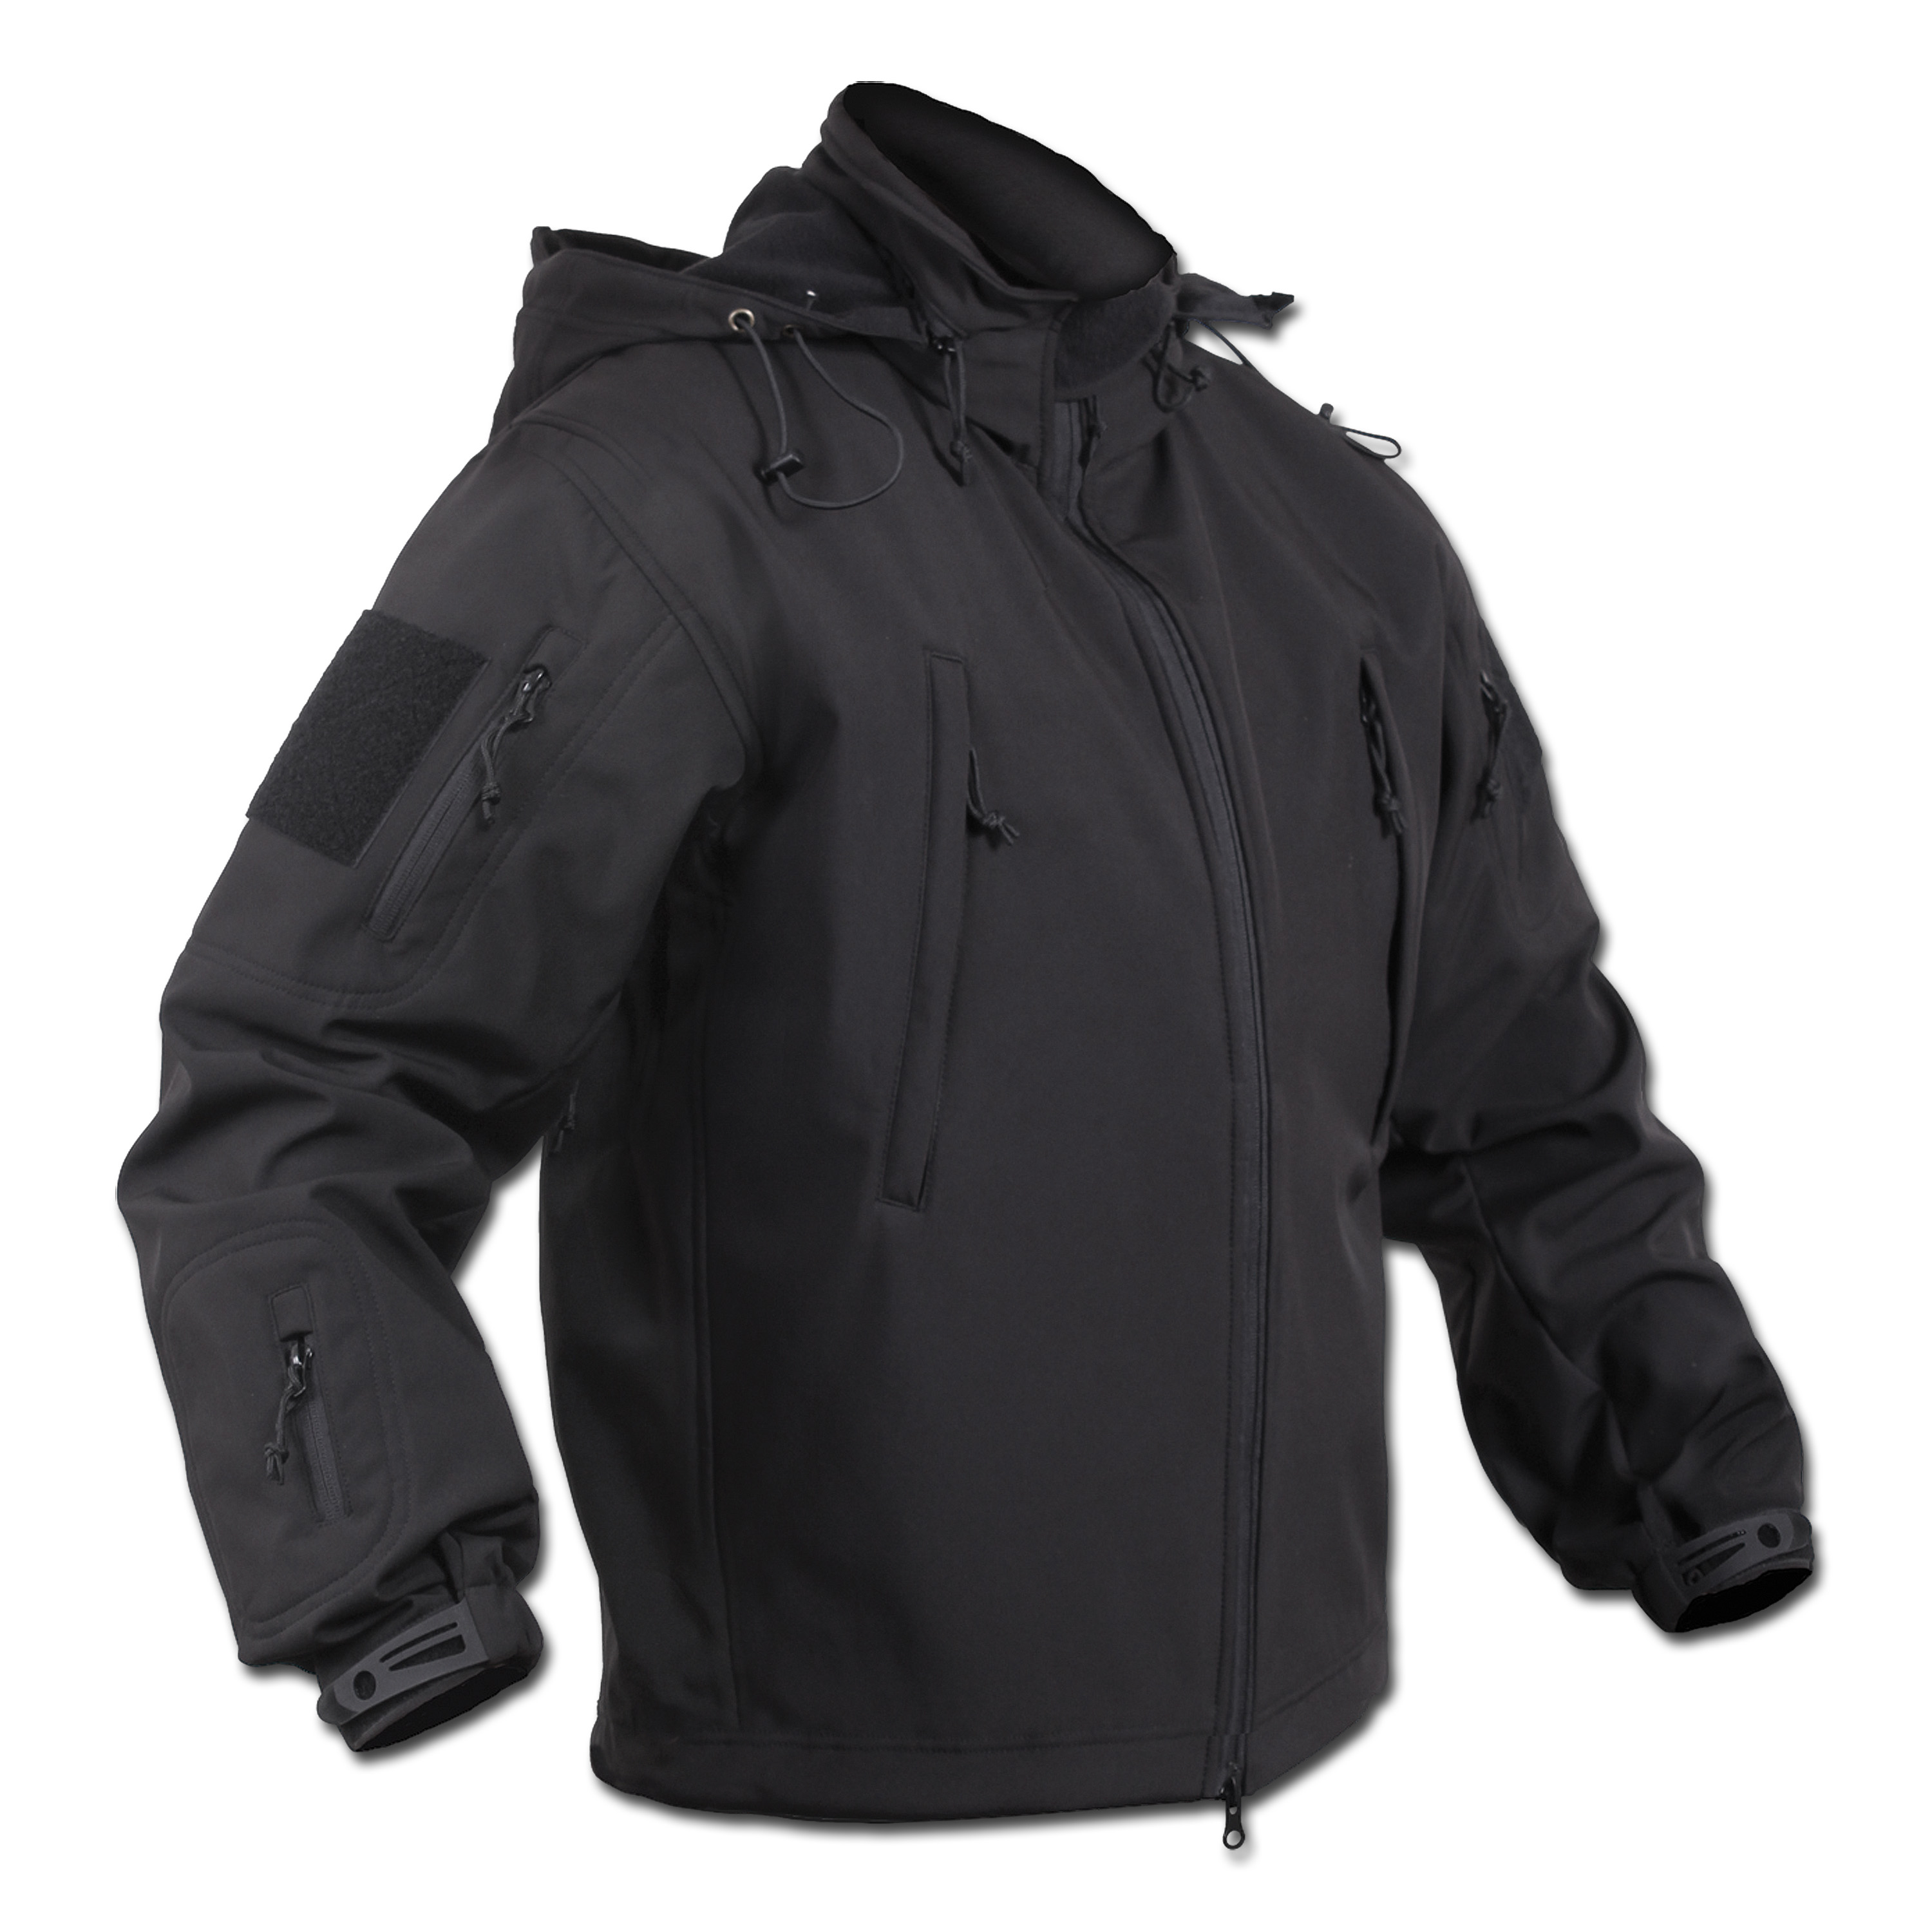 Softshell Jacke Rothco Concealed Carry schwarz